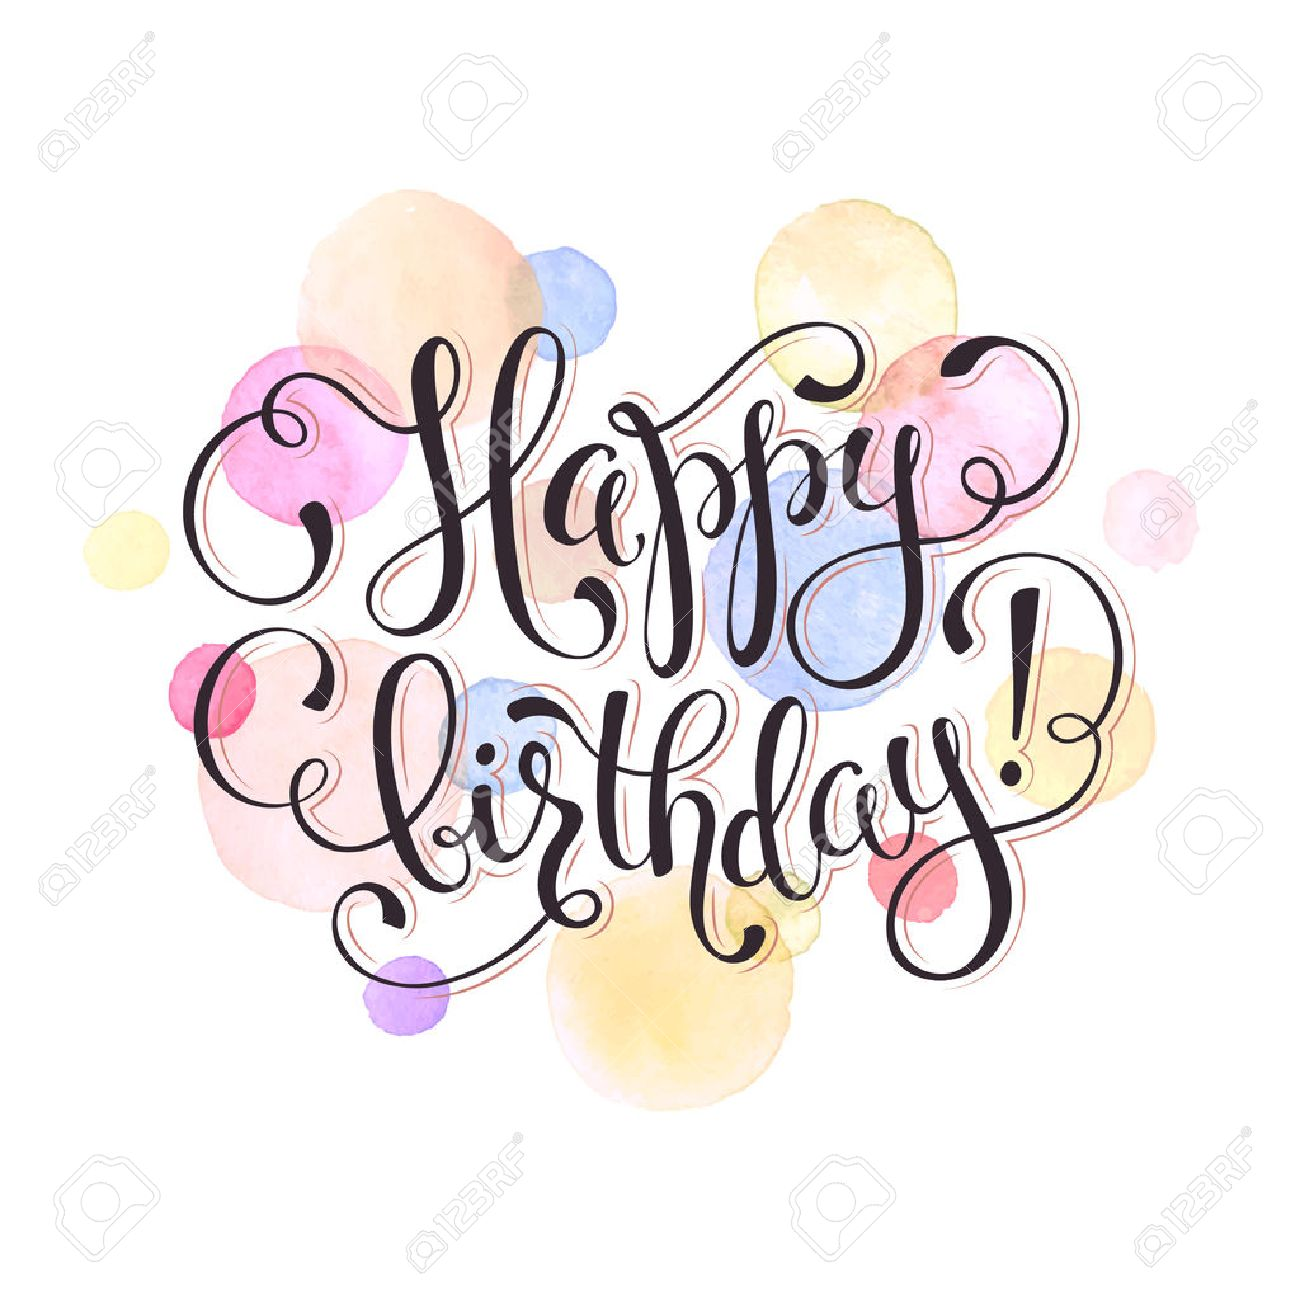 Happy birthday greeting card watercolor spots in pastel color happy birthday greeting card watercolor spots in pastel color isolated on white background with text kristyandbryce Gallery